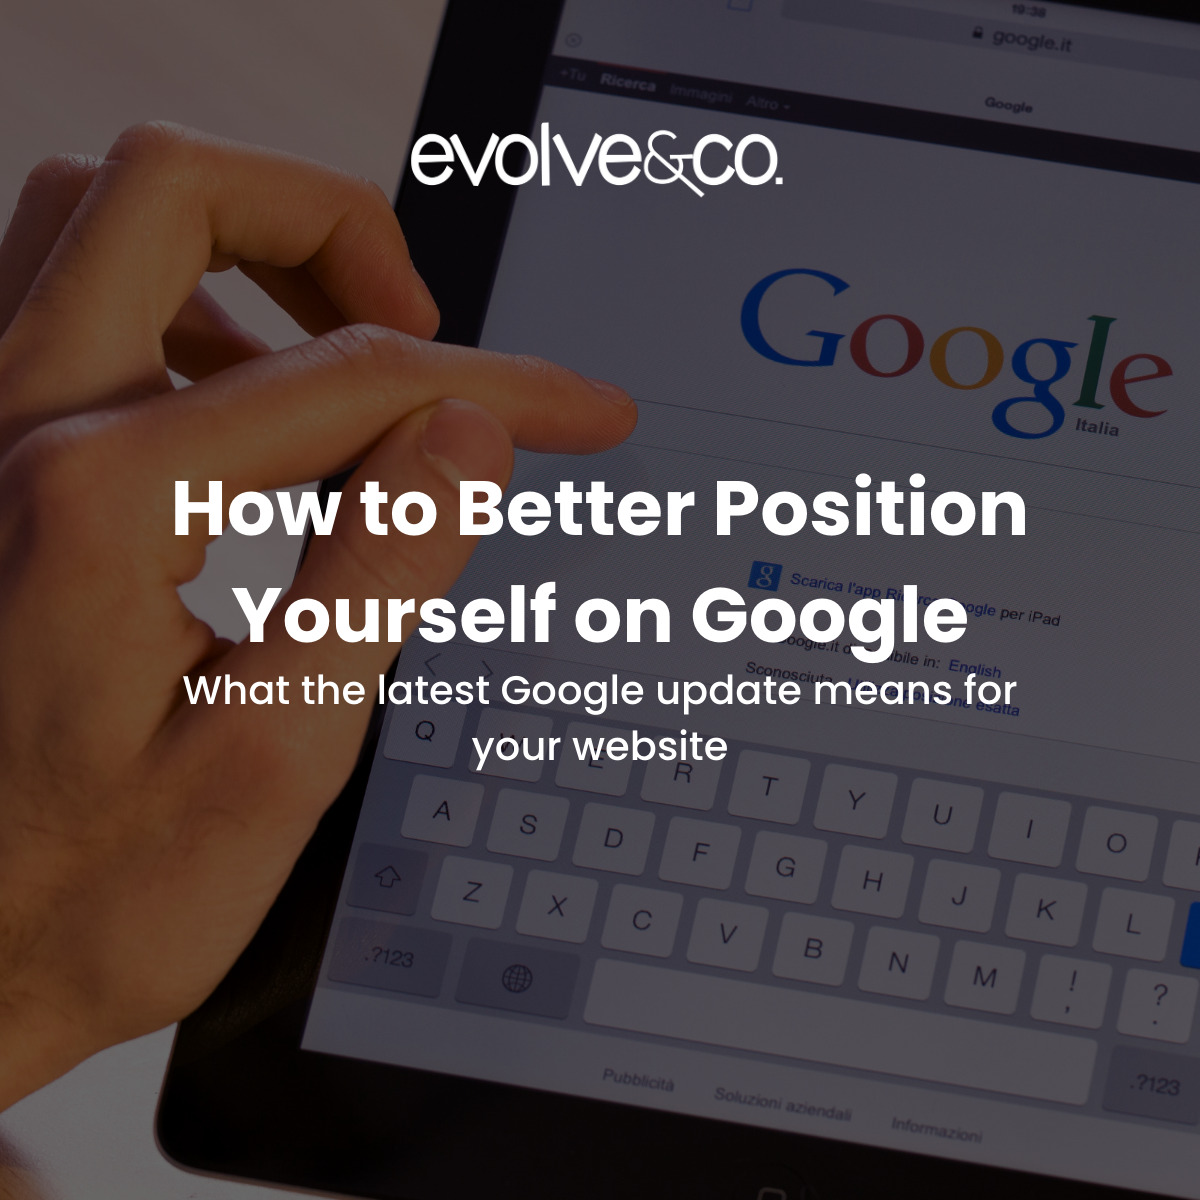 How to Better Position Yourself on Google